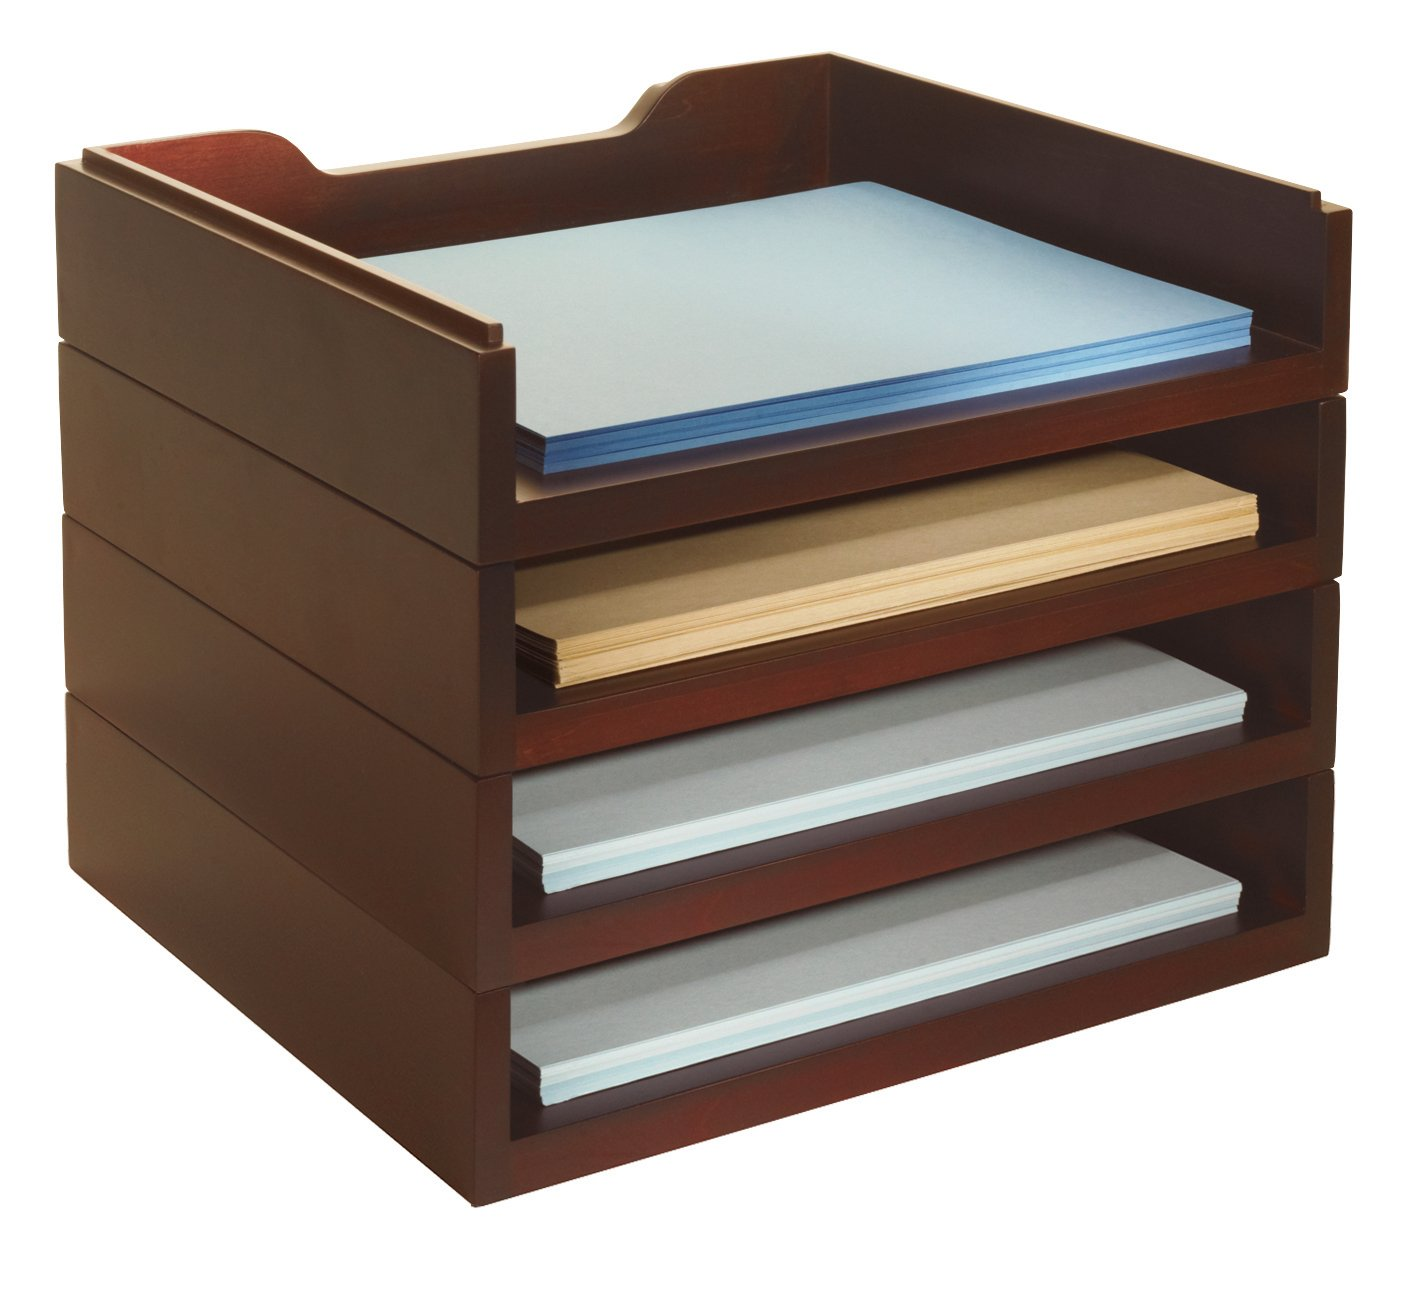 Bindertek Stacking Wood Desk Organizers with 4 Letter Tray Kit, Mahogany (WK6-MA)